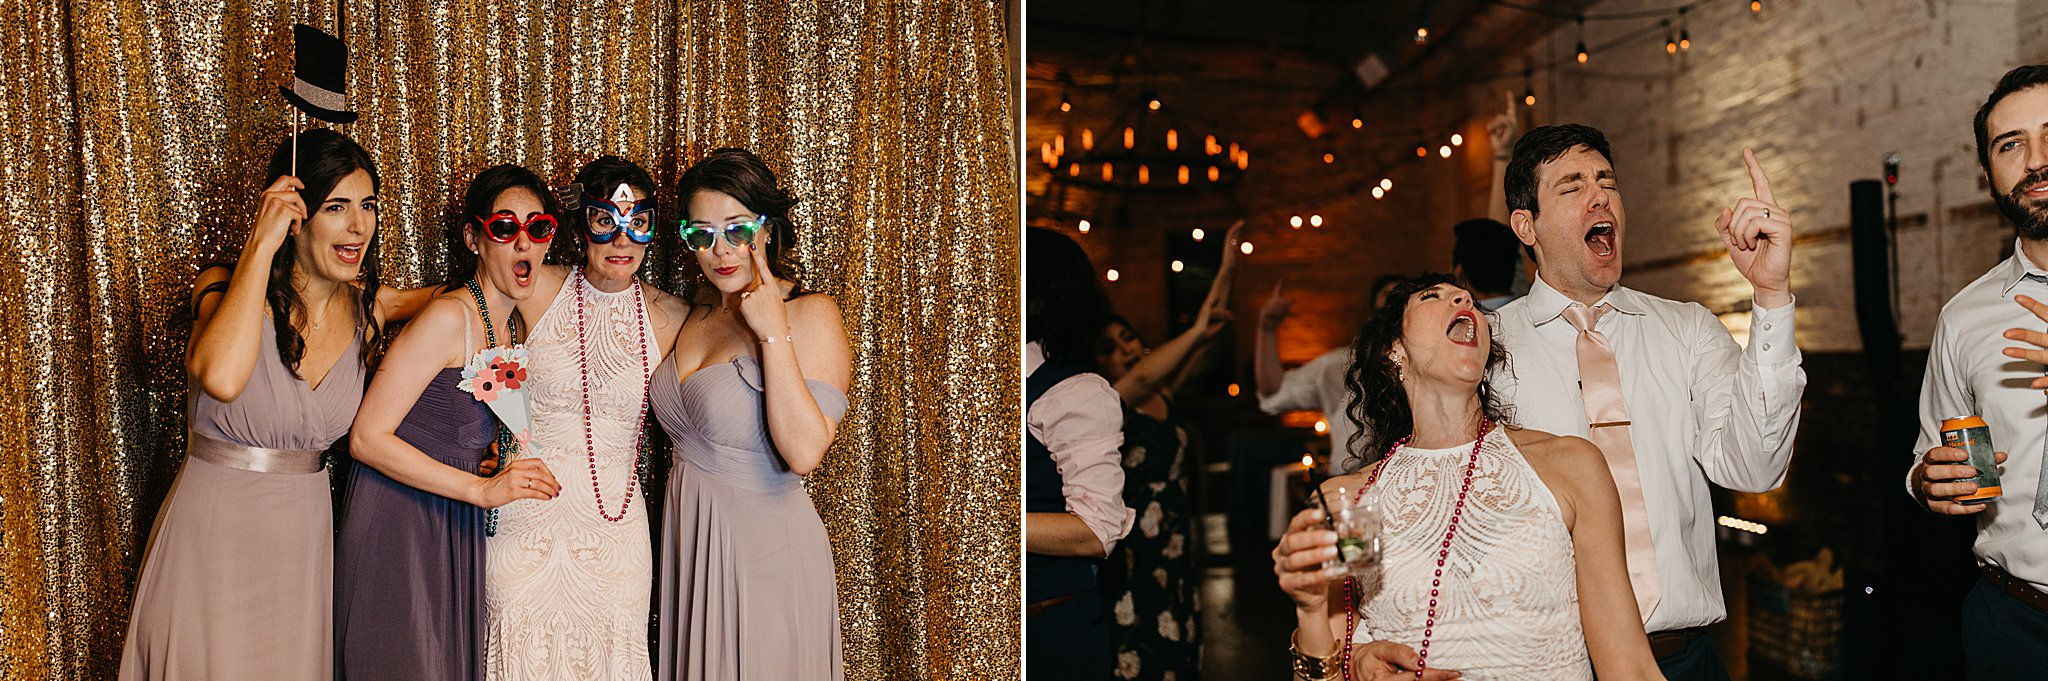 Wilderlove Co_Wedding Photographer_Industrial Wedding_Jewish Wedding_Dallas Texas Wedding_Brake & Clutch Warehouse_North Texas Photographer_0099.jpg